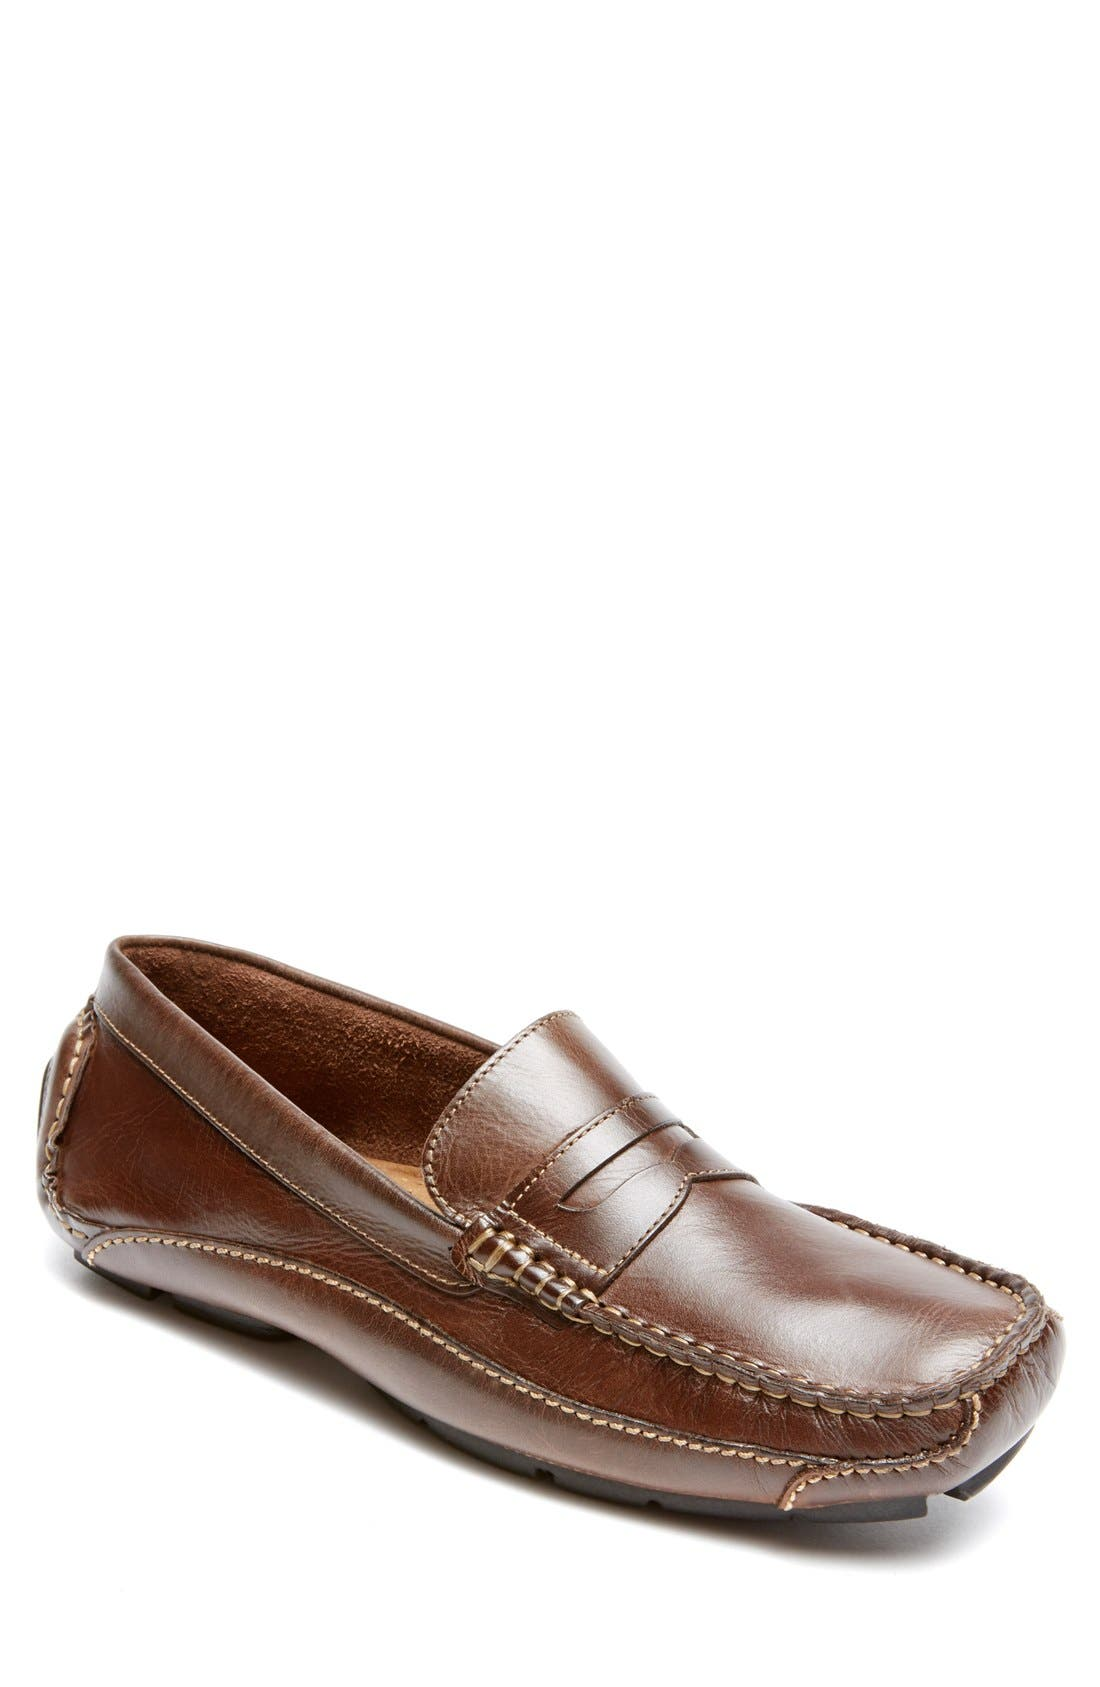 Luxury Cruise Penny Loafer, Main, color, 200